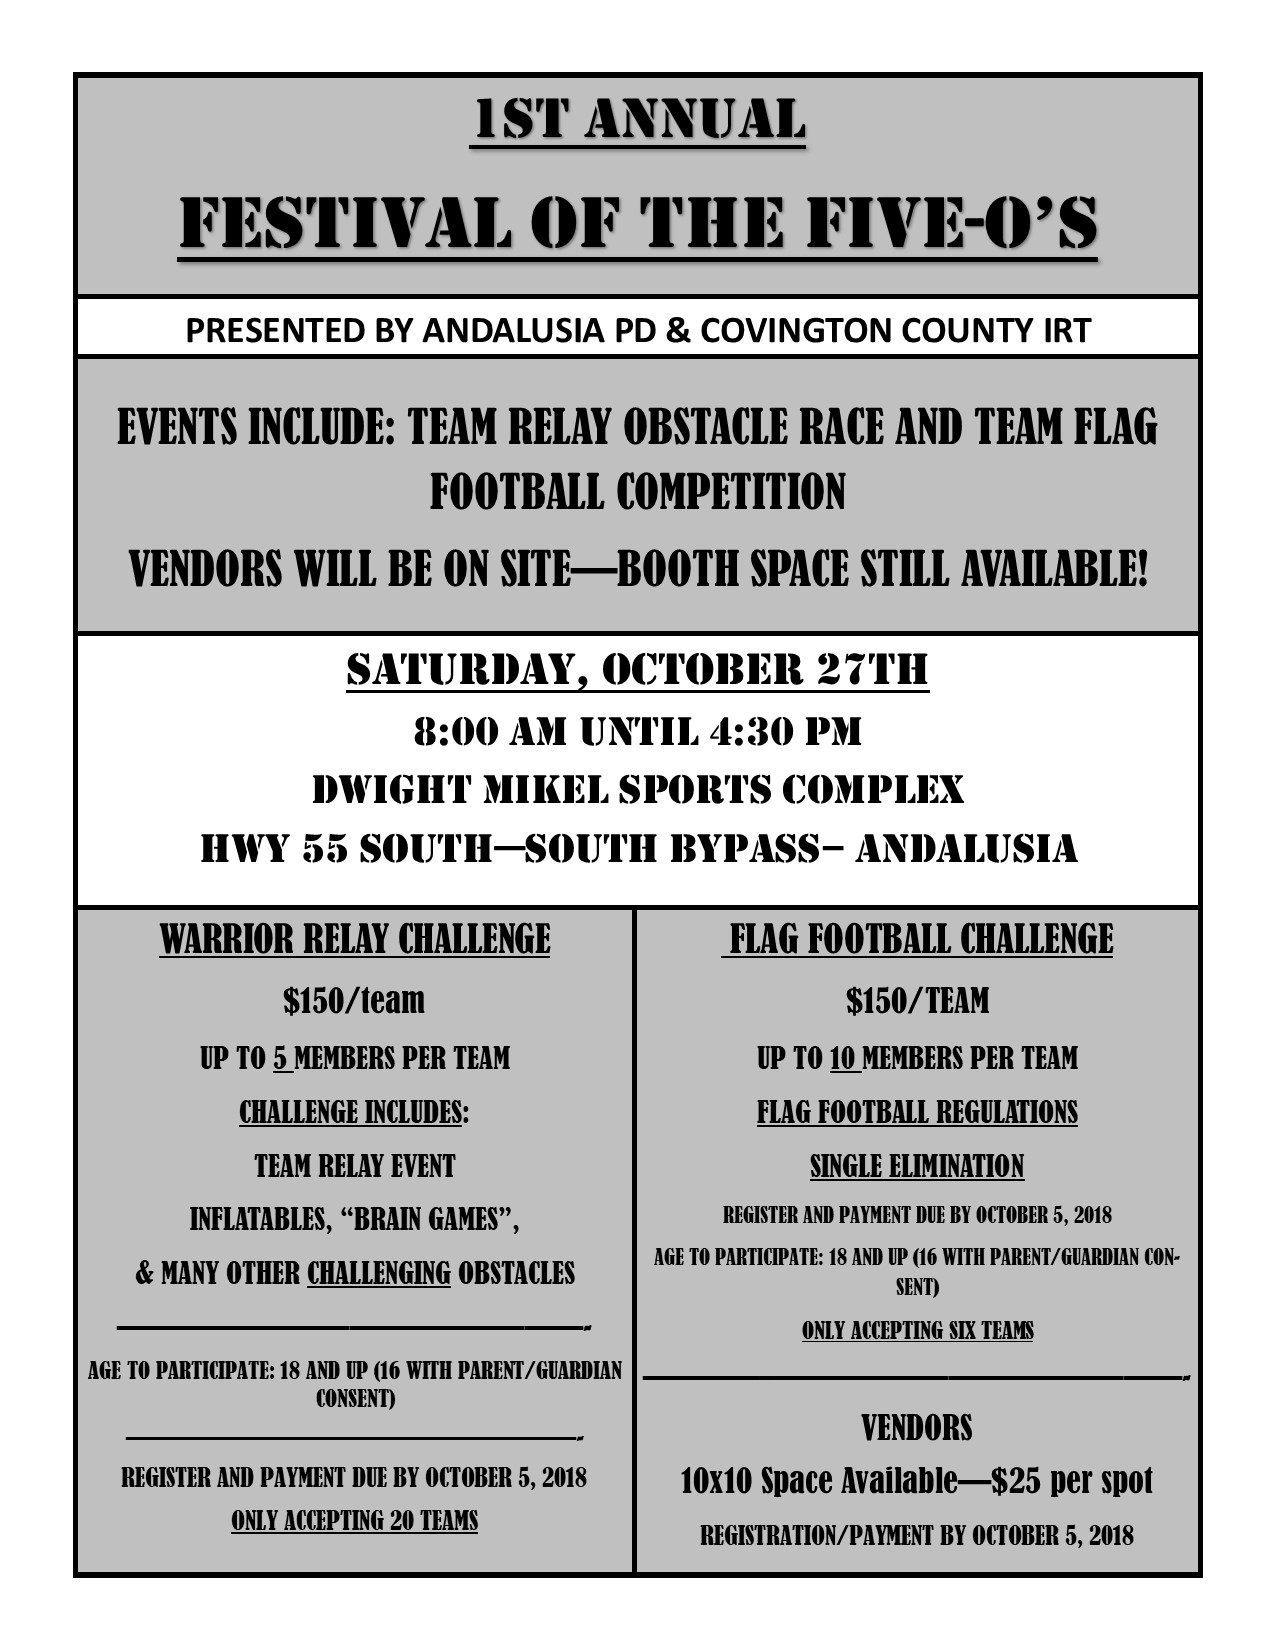 Festival of FiveOs Flyer 2018